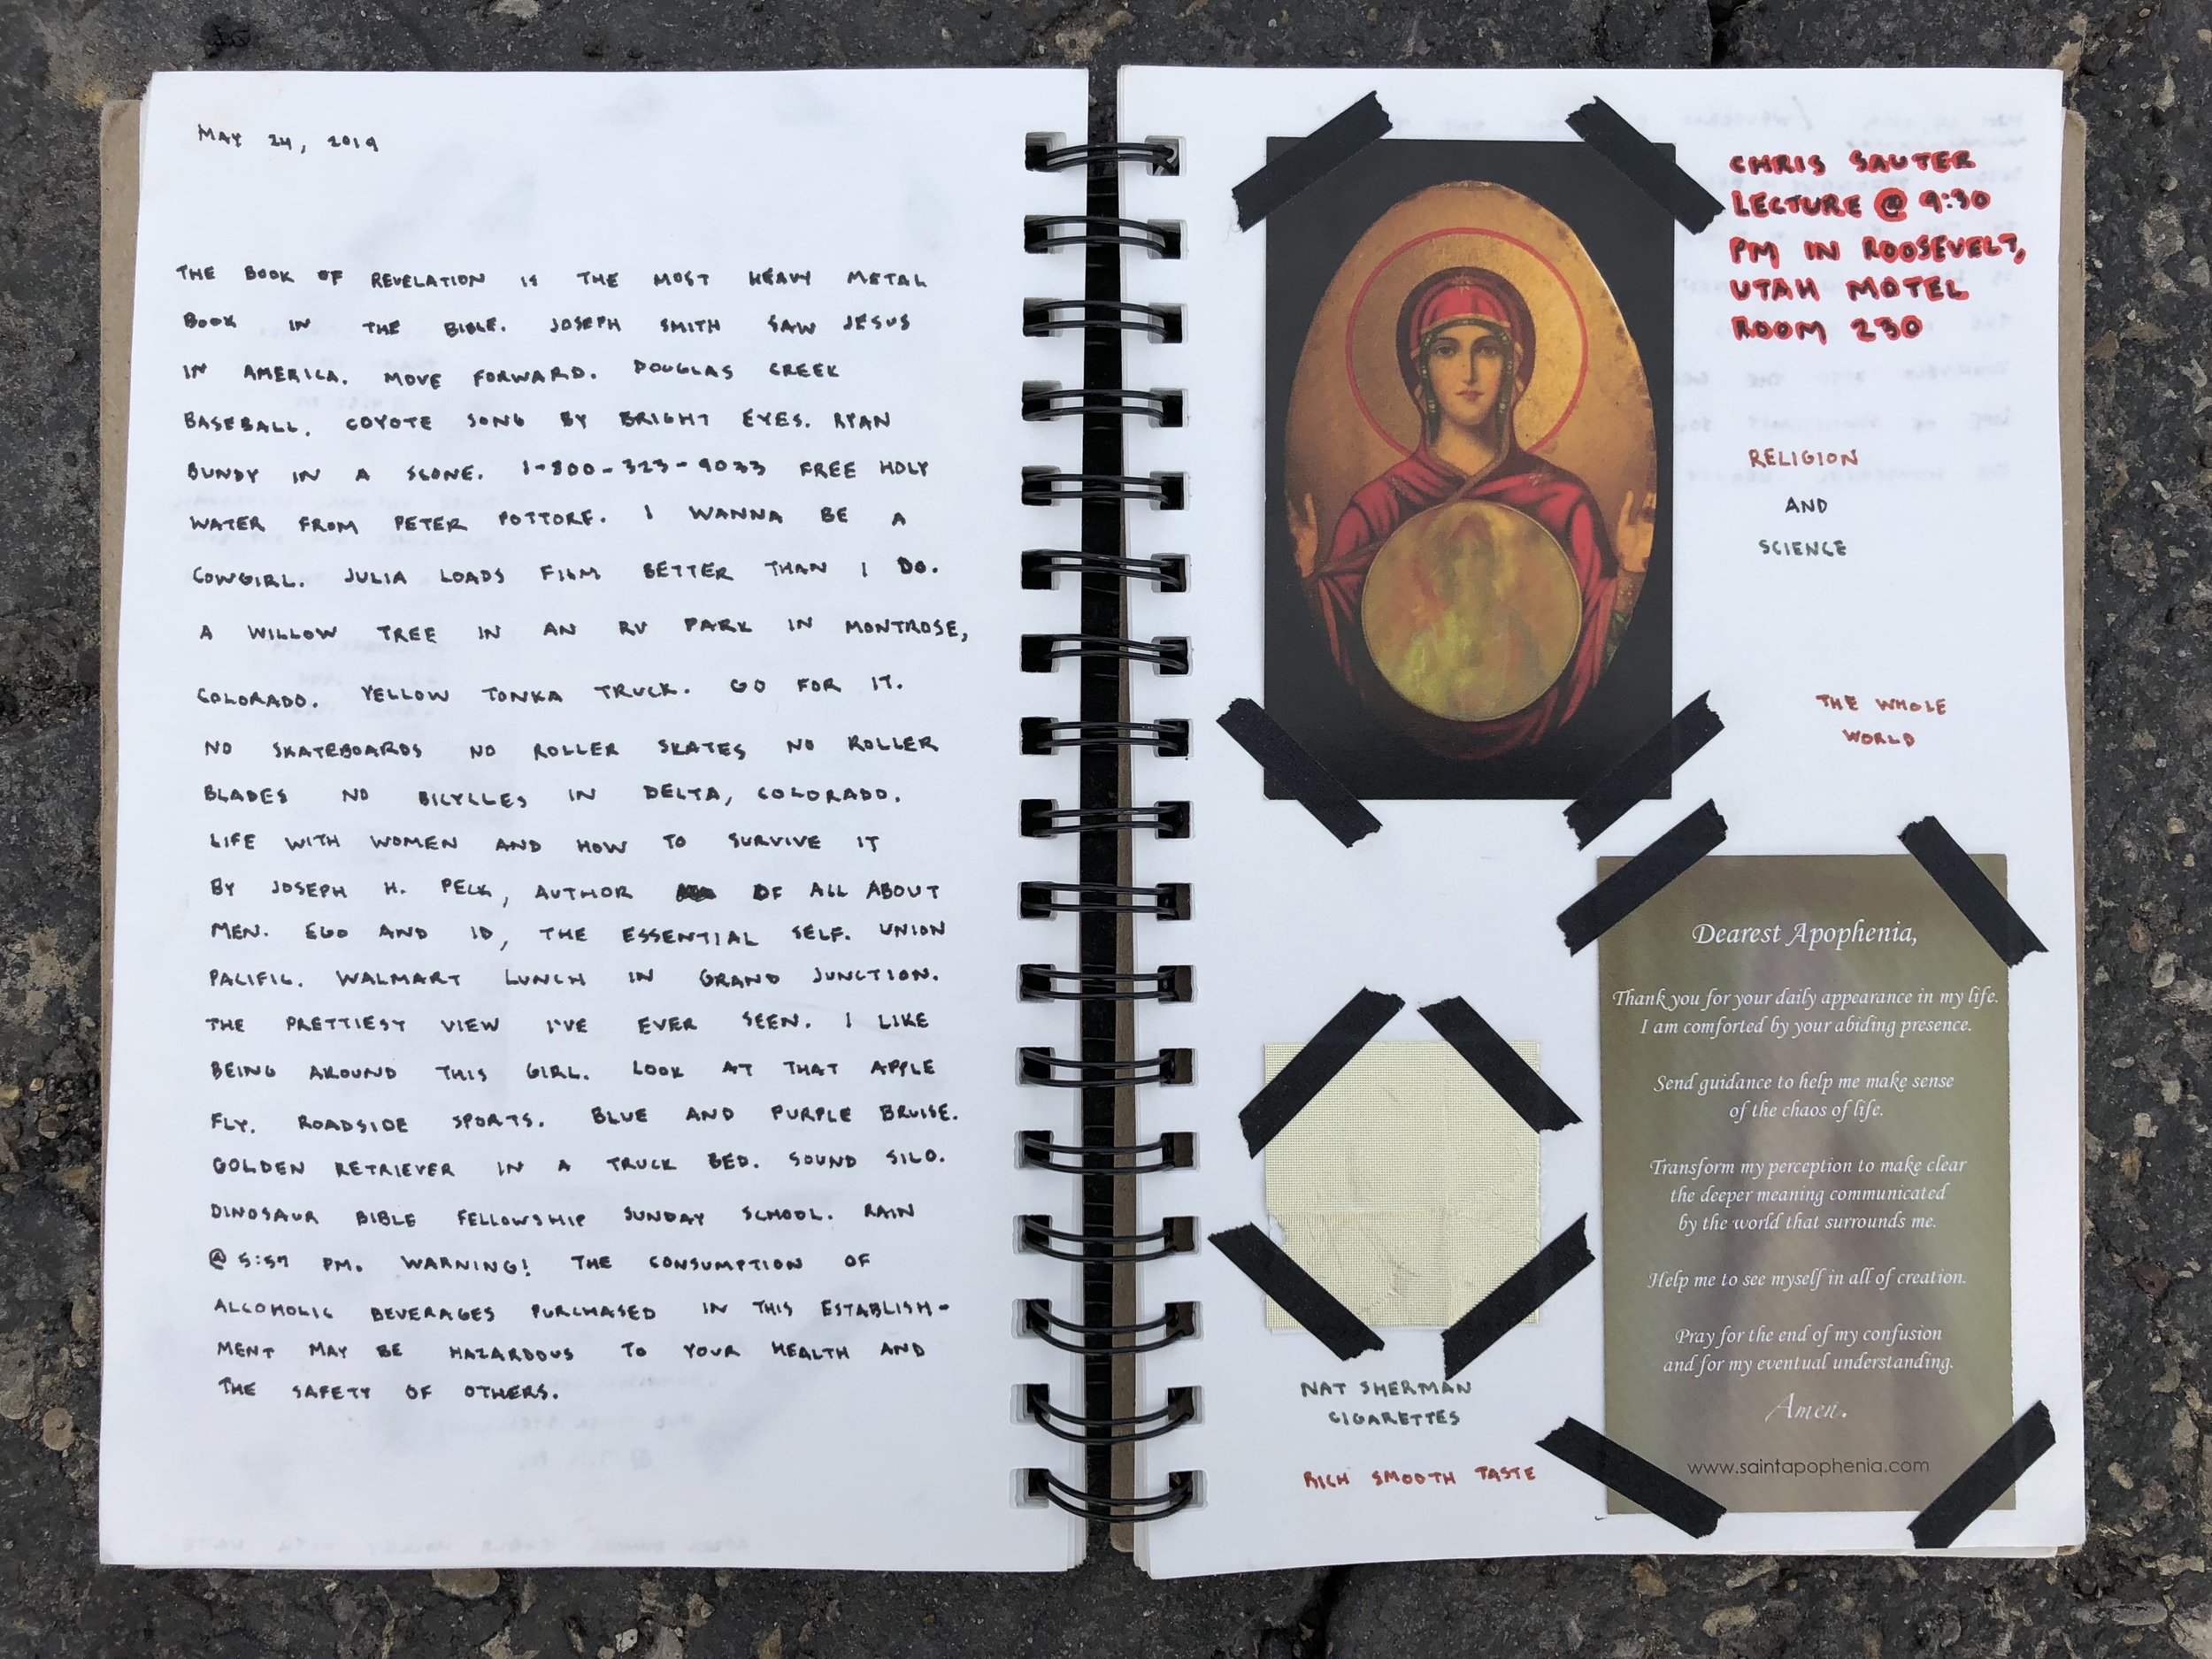 Left side is notes from the day and readings and thinking's—right notes from Chris sauter and findings